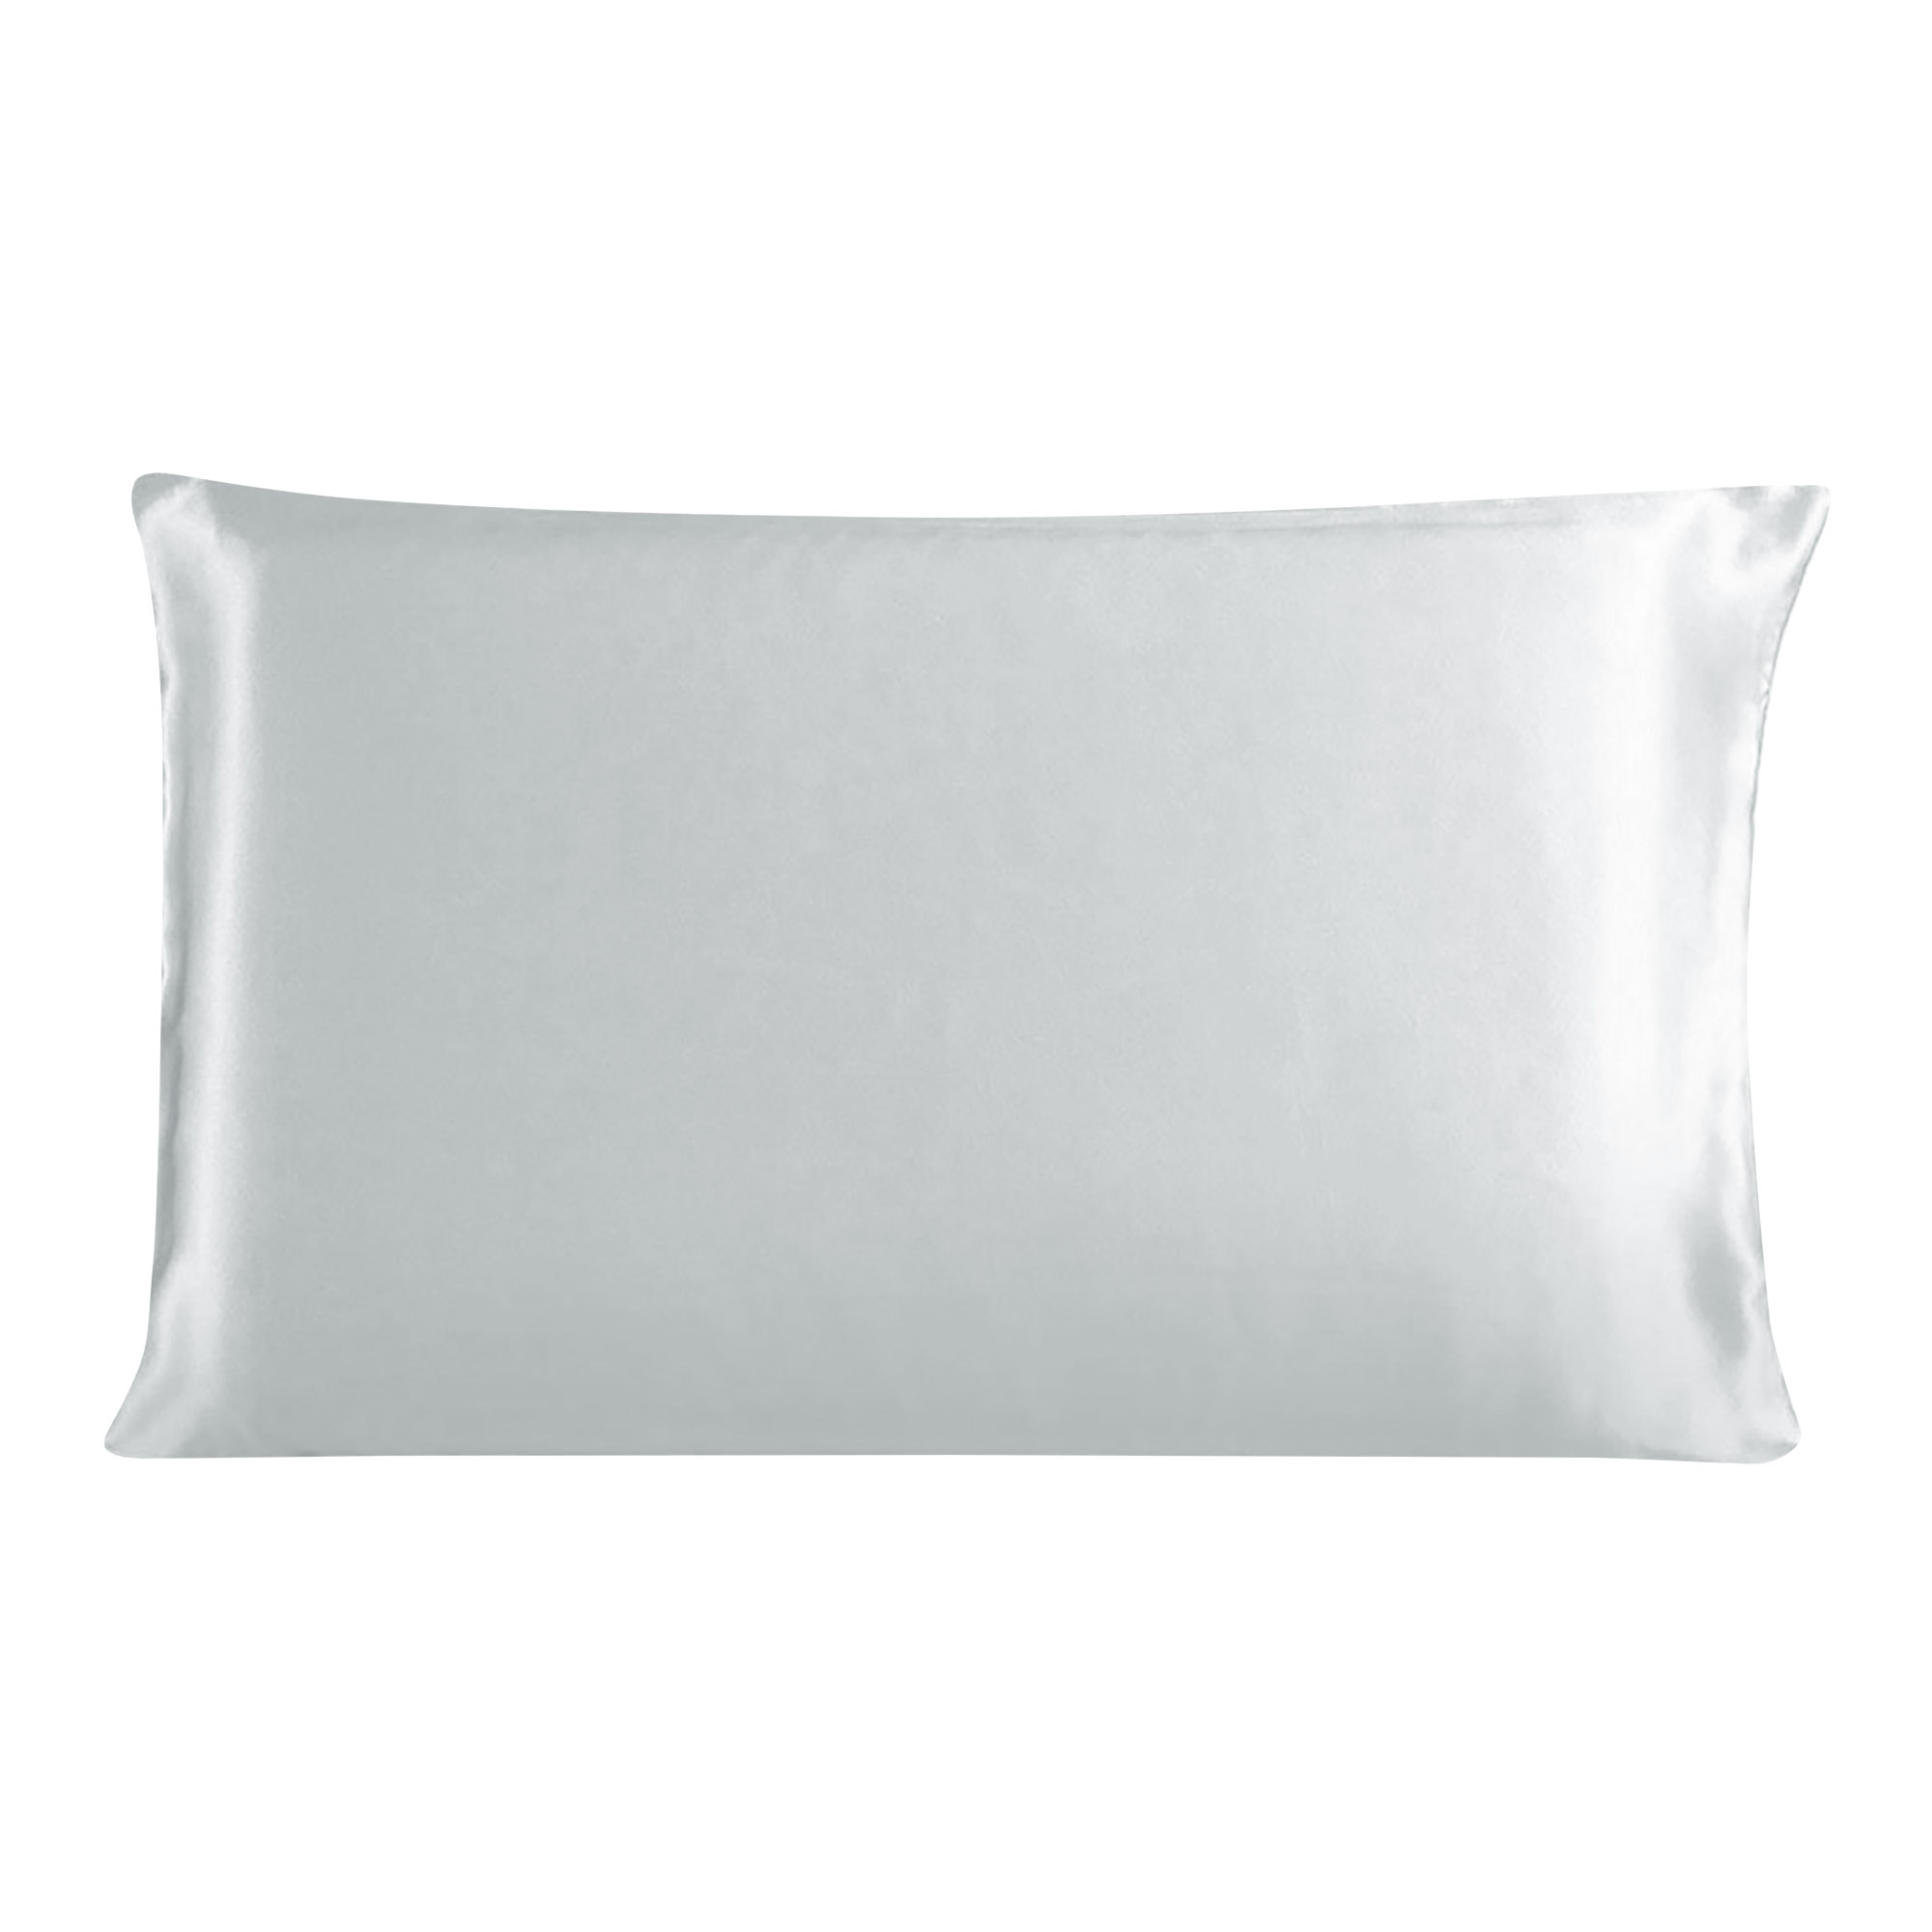 100% Mulberry Silk Fabric Pillow Case Cover Pillowcase Silver Gray King Size